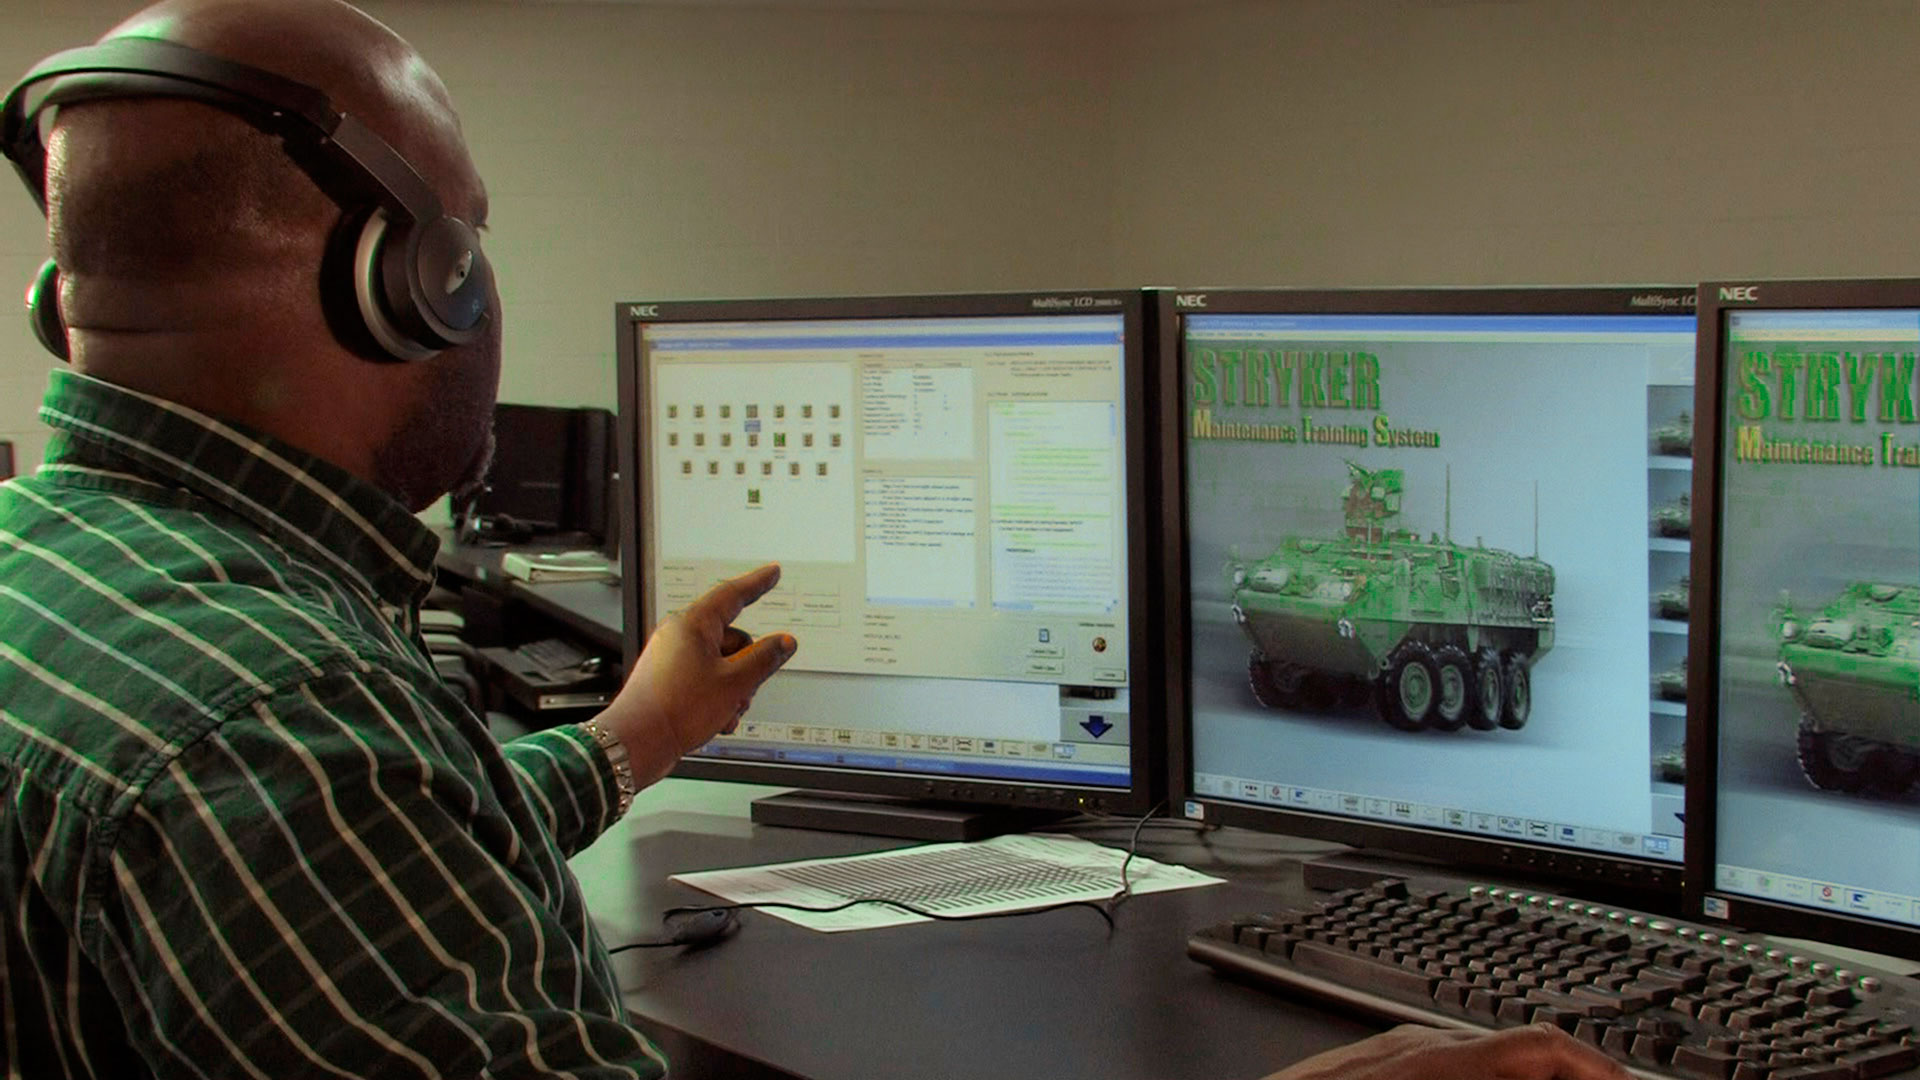 Man looking at computer with Stryker training